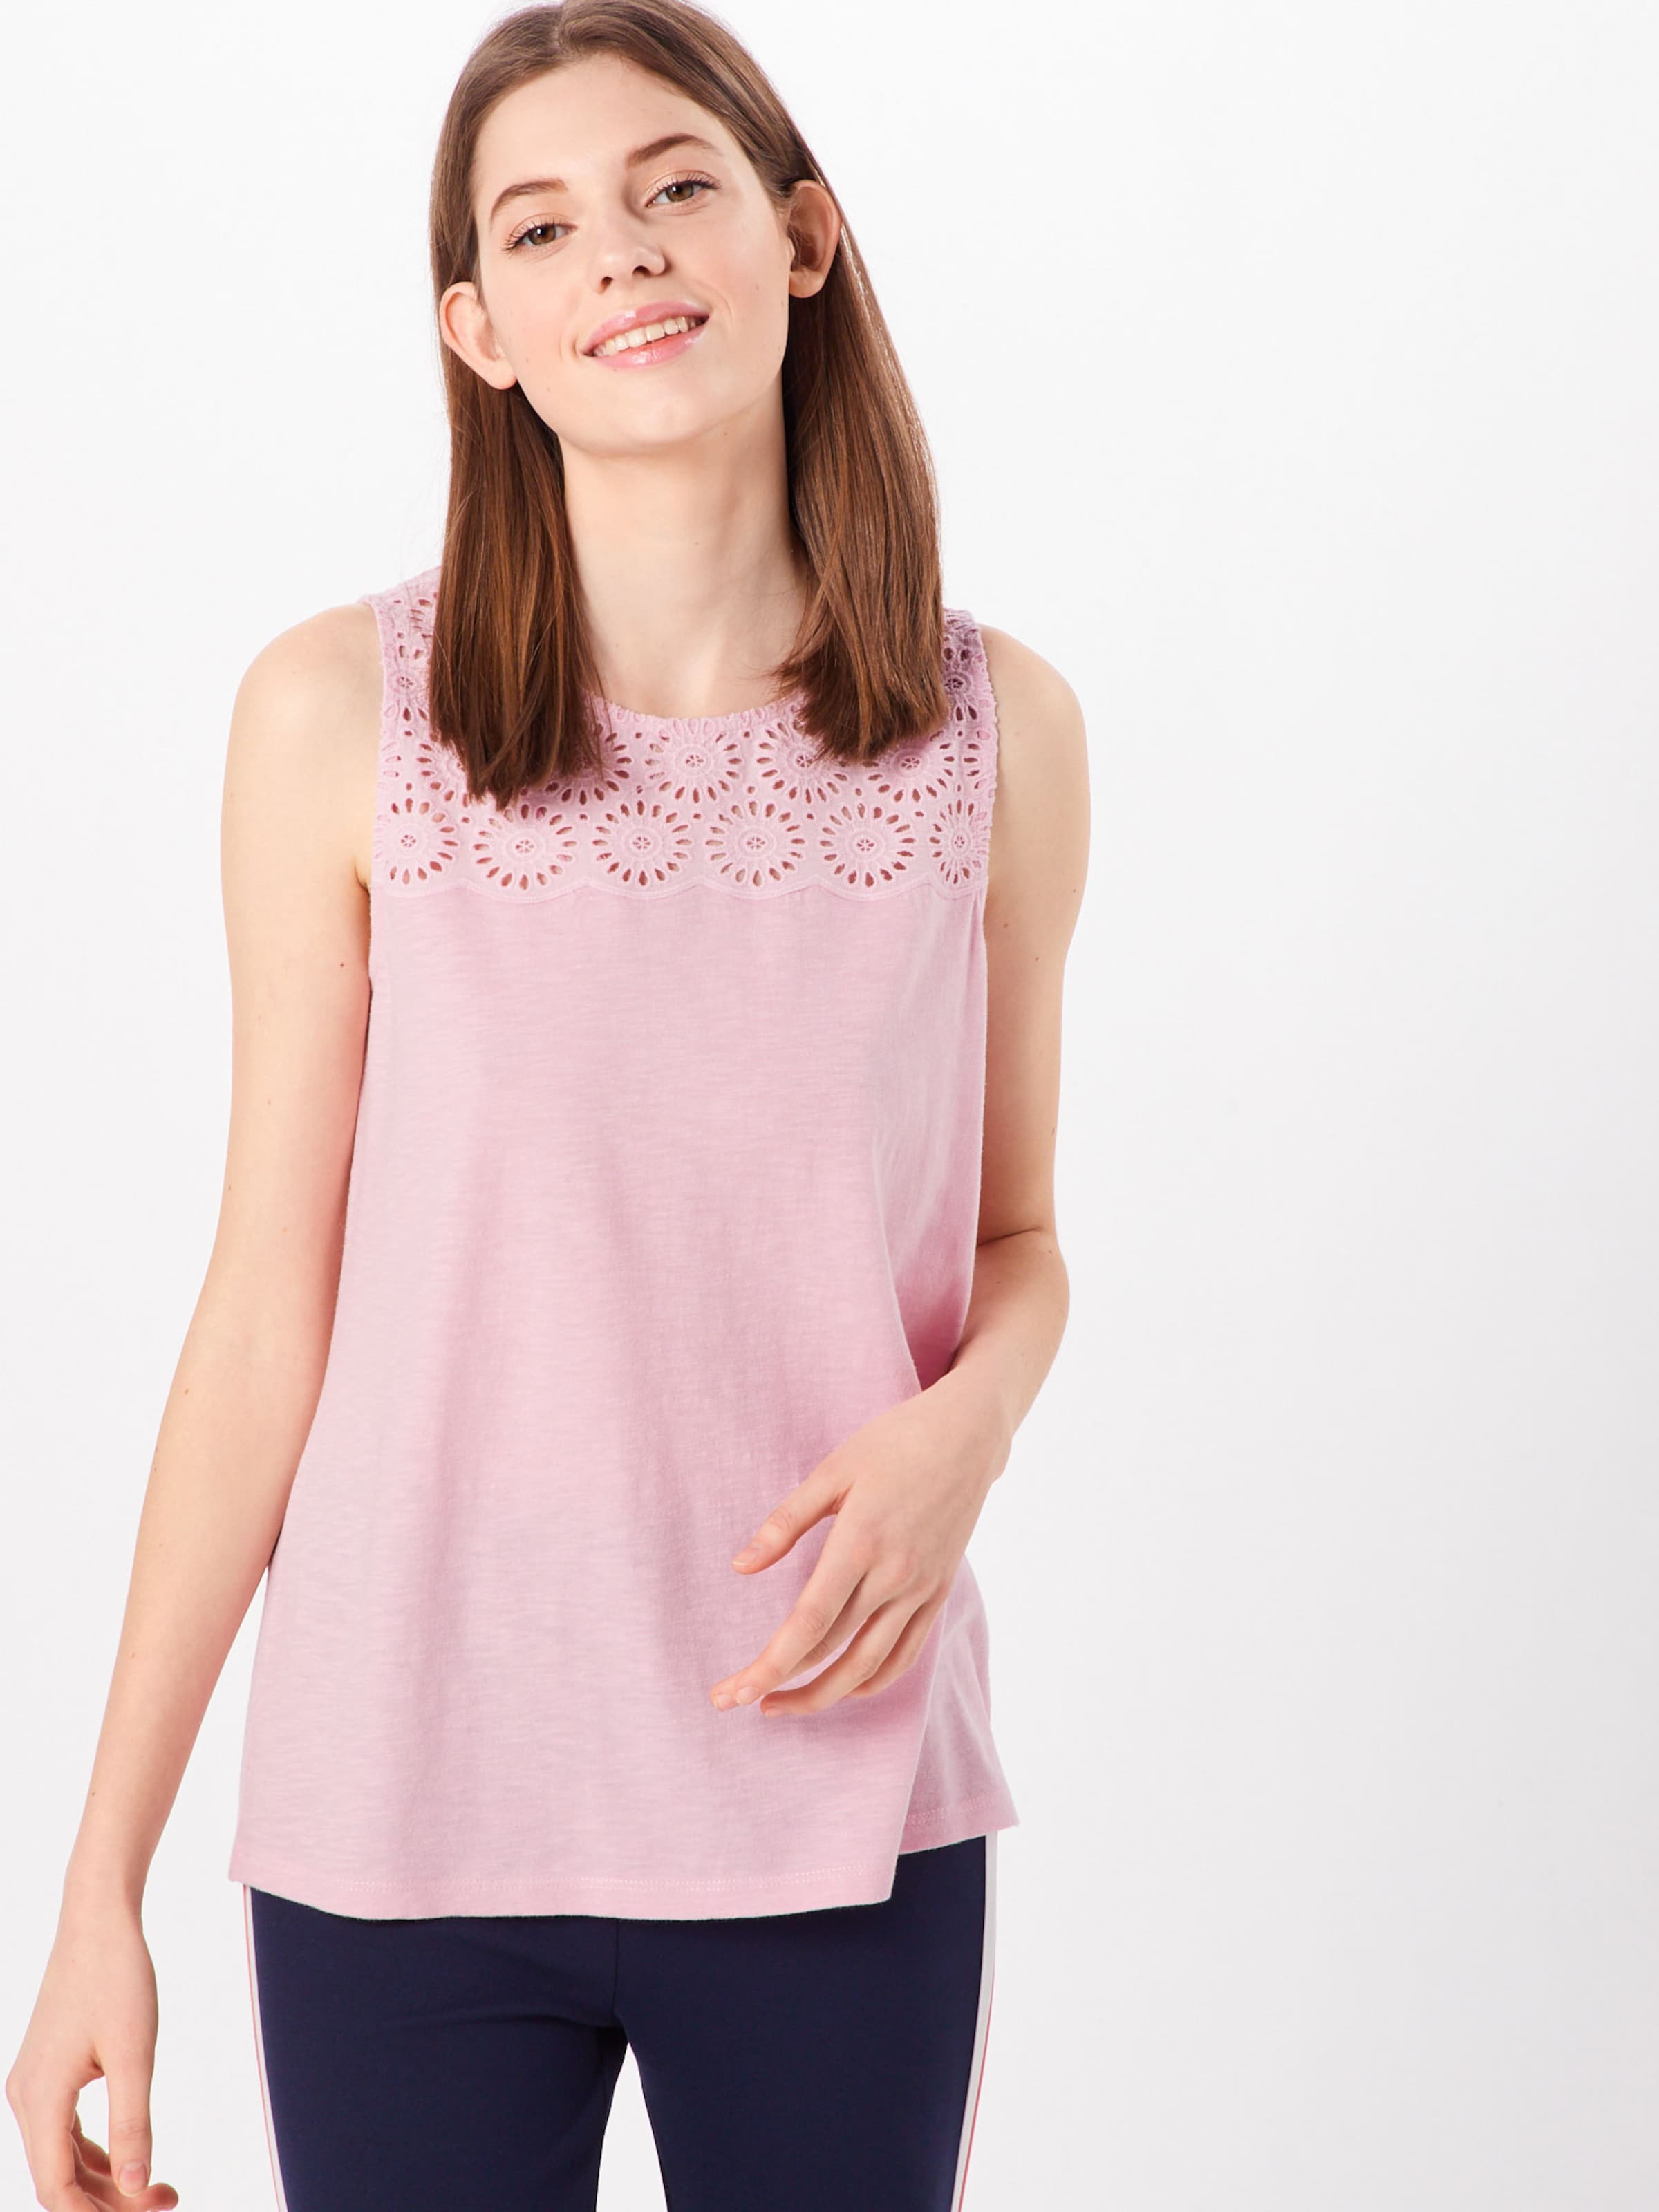 Esprit Pink Edc Top In By 3FKJuT5l1c